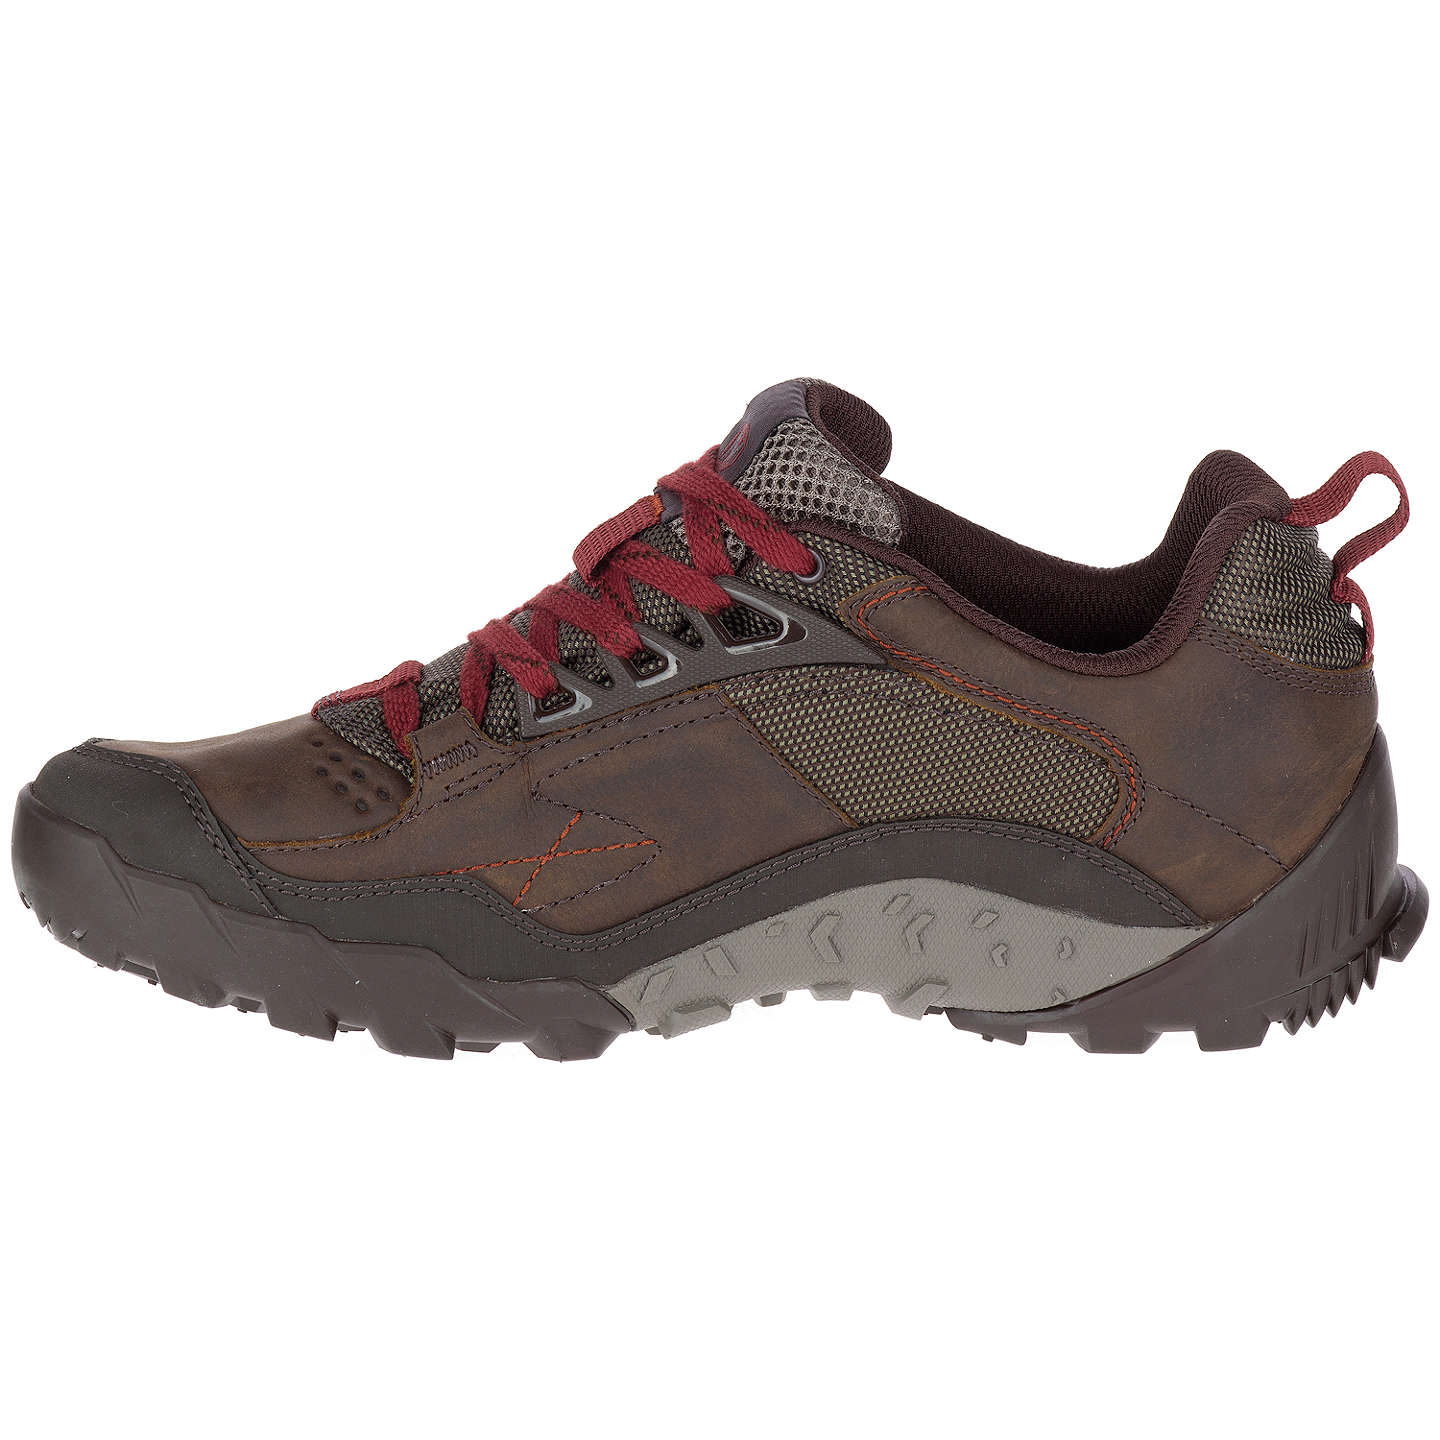 Merrell Annex Trex Hiking Shoes Clay at John Lewis